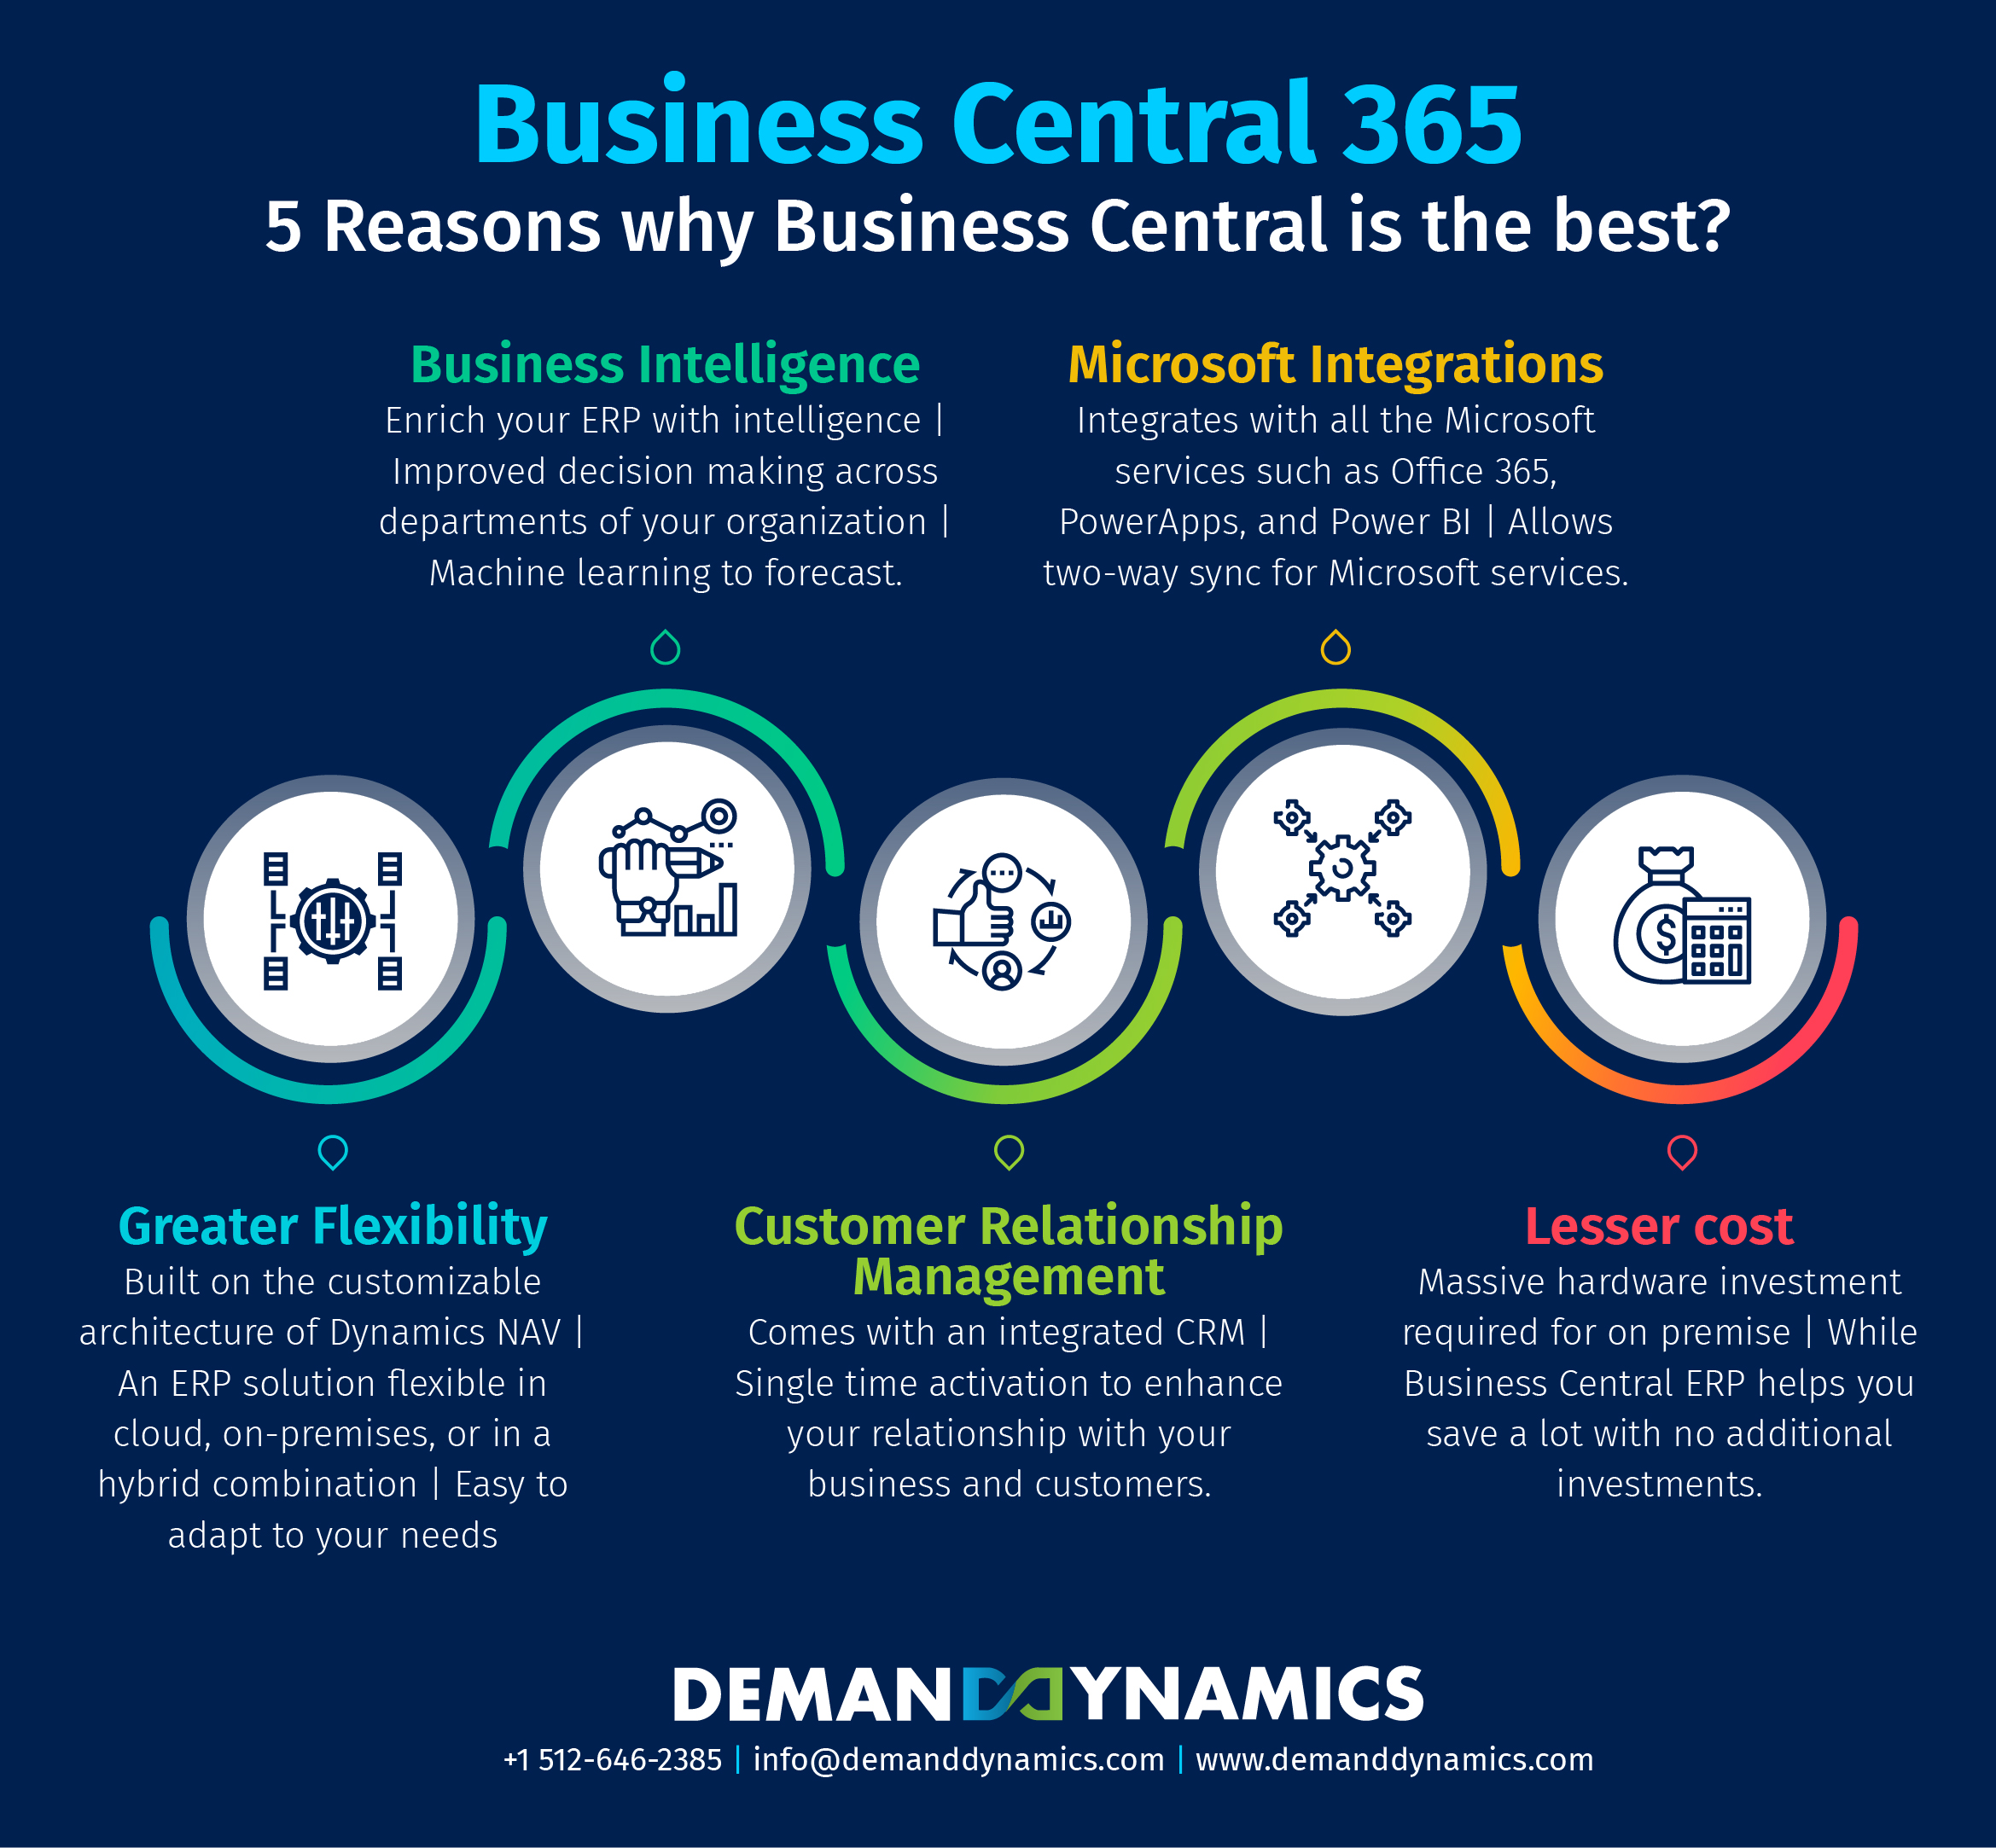 Why Dynamics 365 Business Central is the Best?